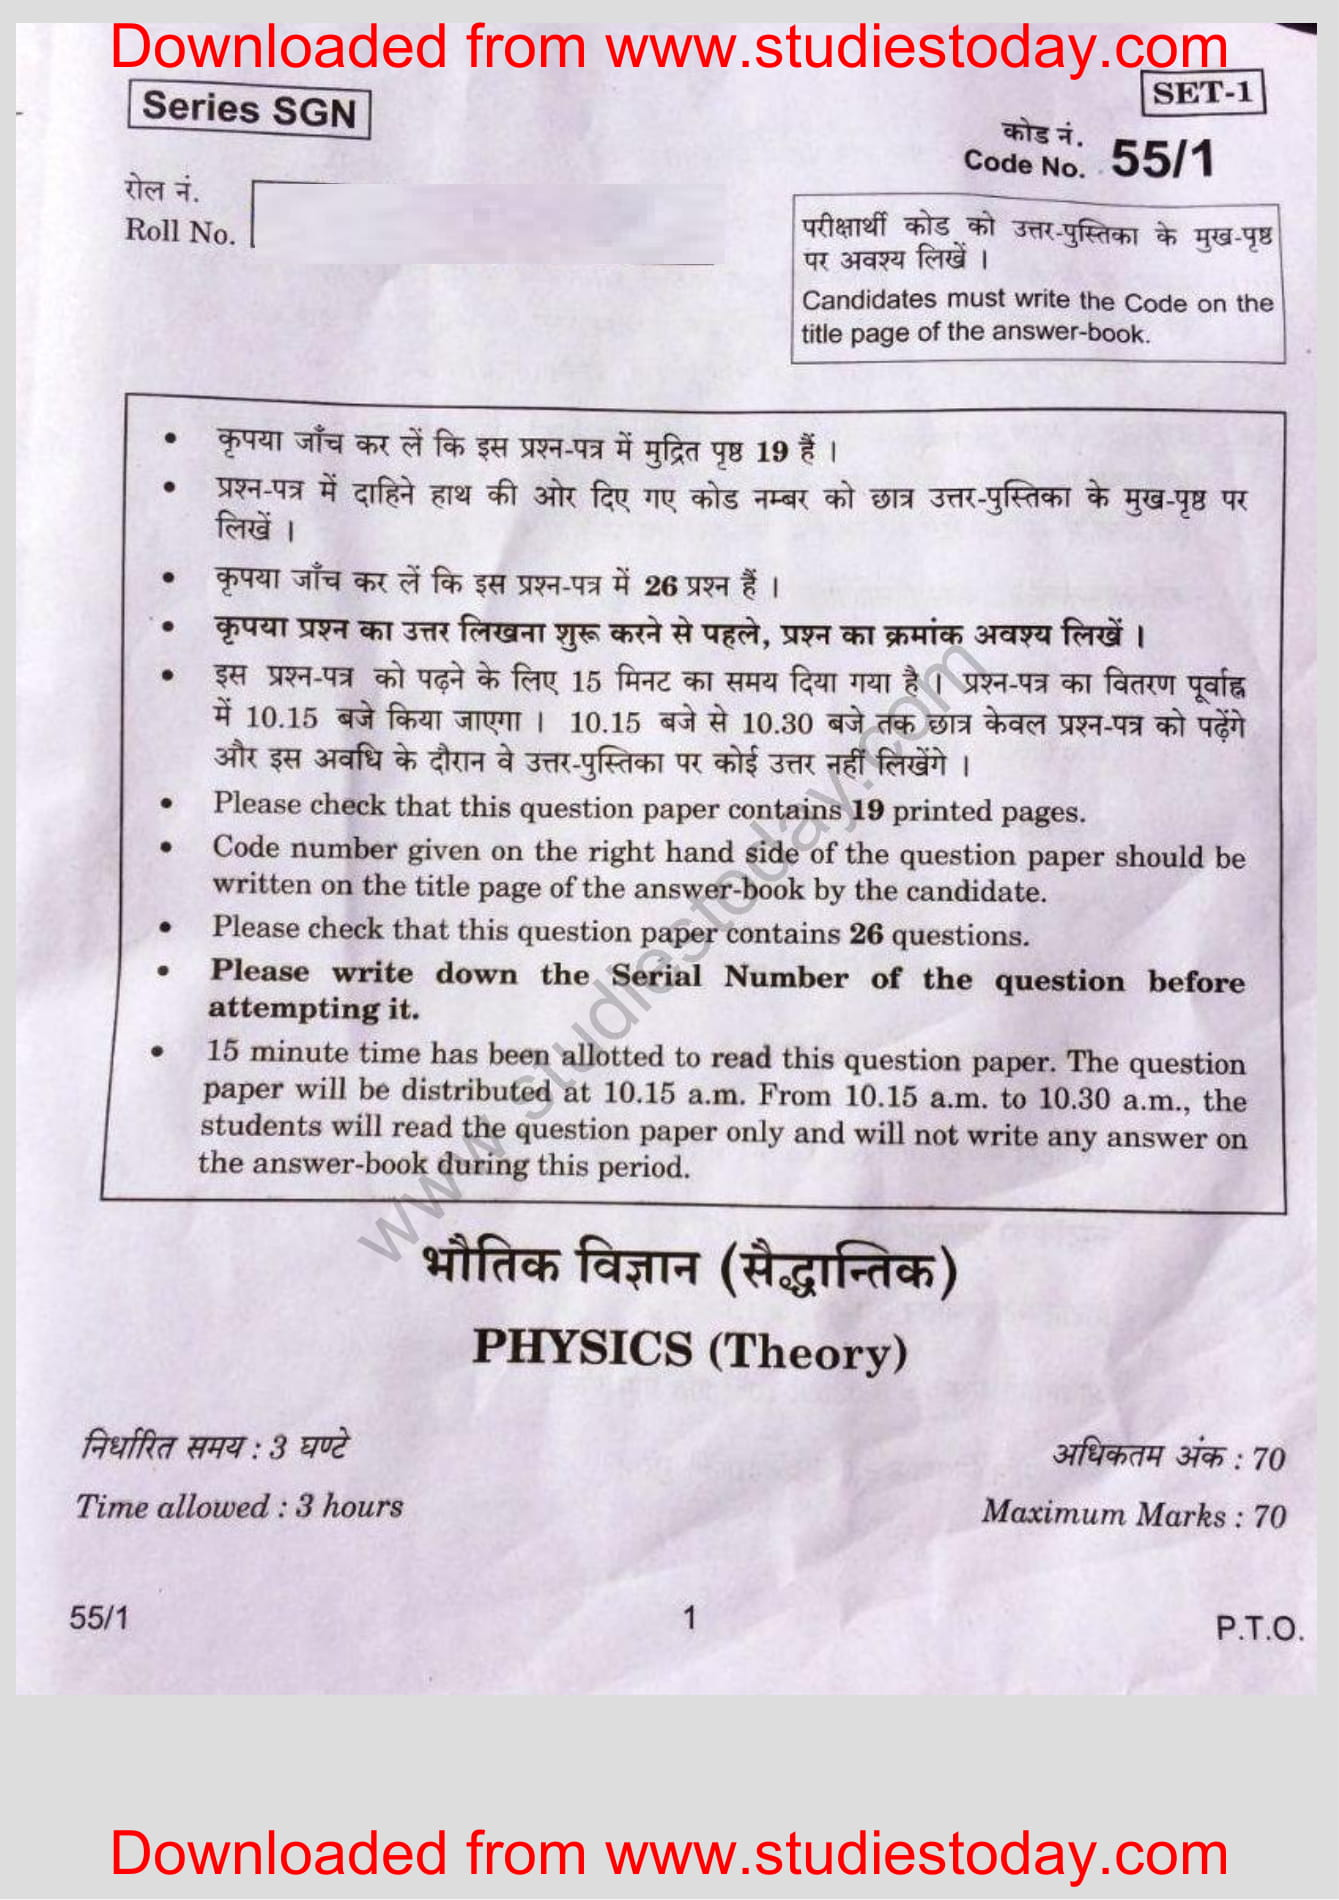 Cbse class 12 physics paper latest news announcements circulars and has already been signed by almost 10000 students to persuade cbse to do lenient marking in the physics exam see the board exam paper below malvernweather Image collections